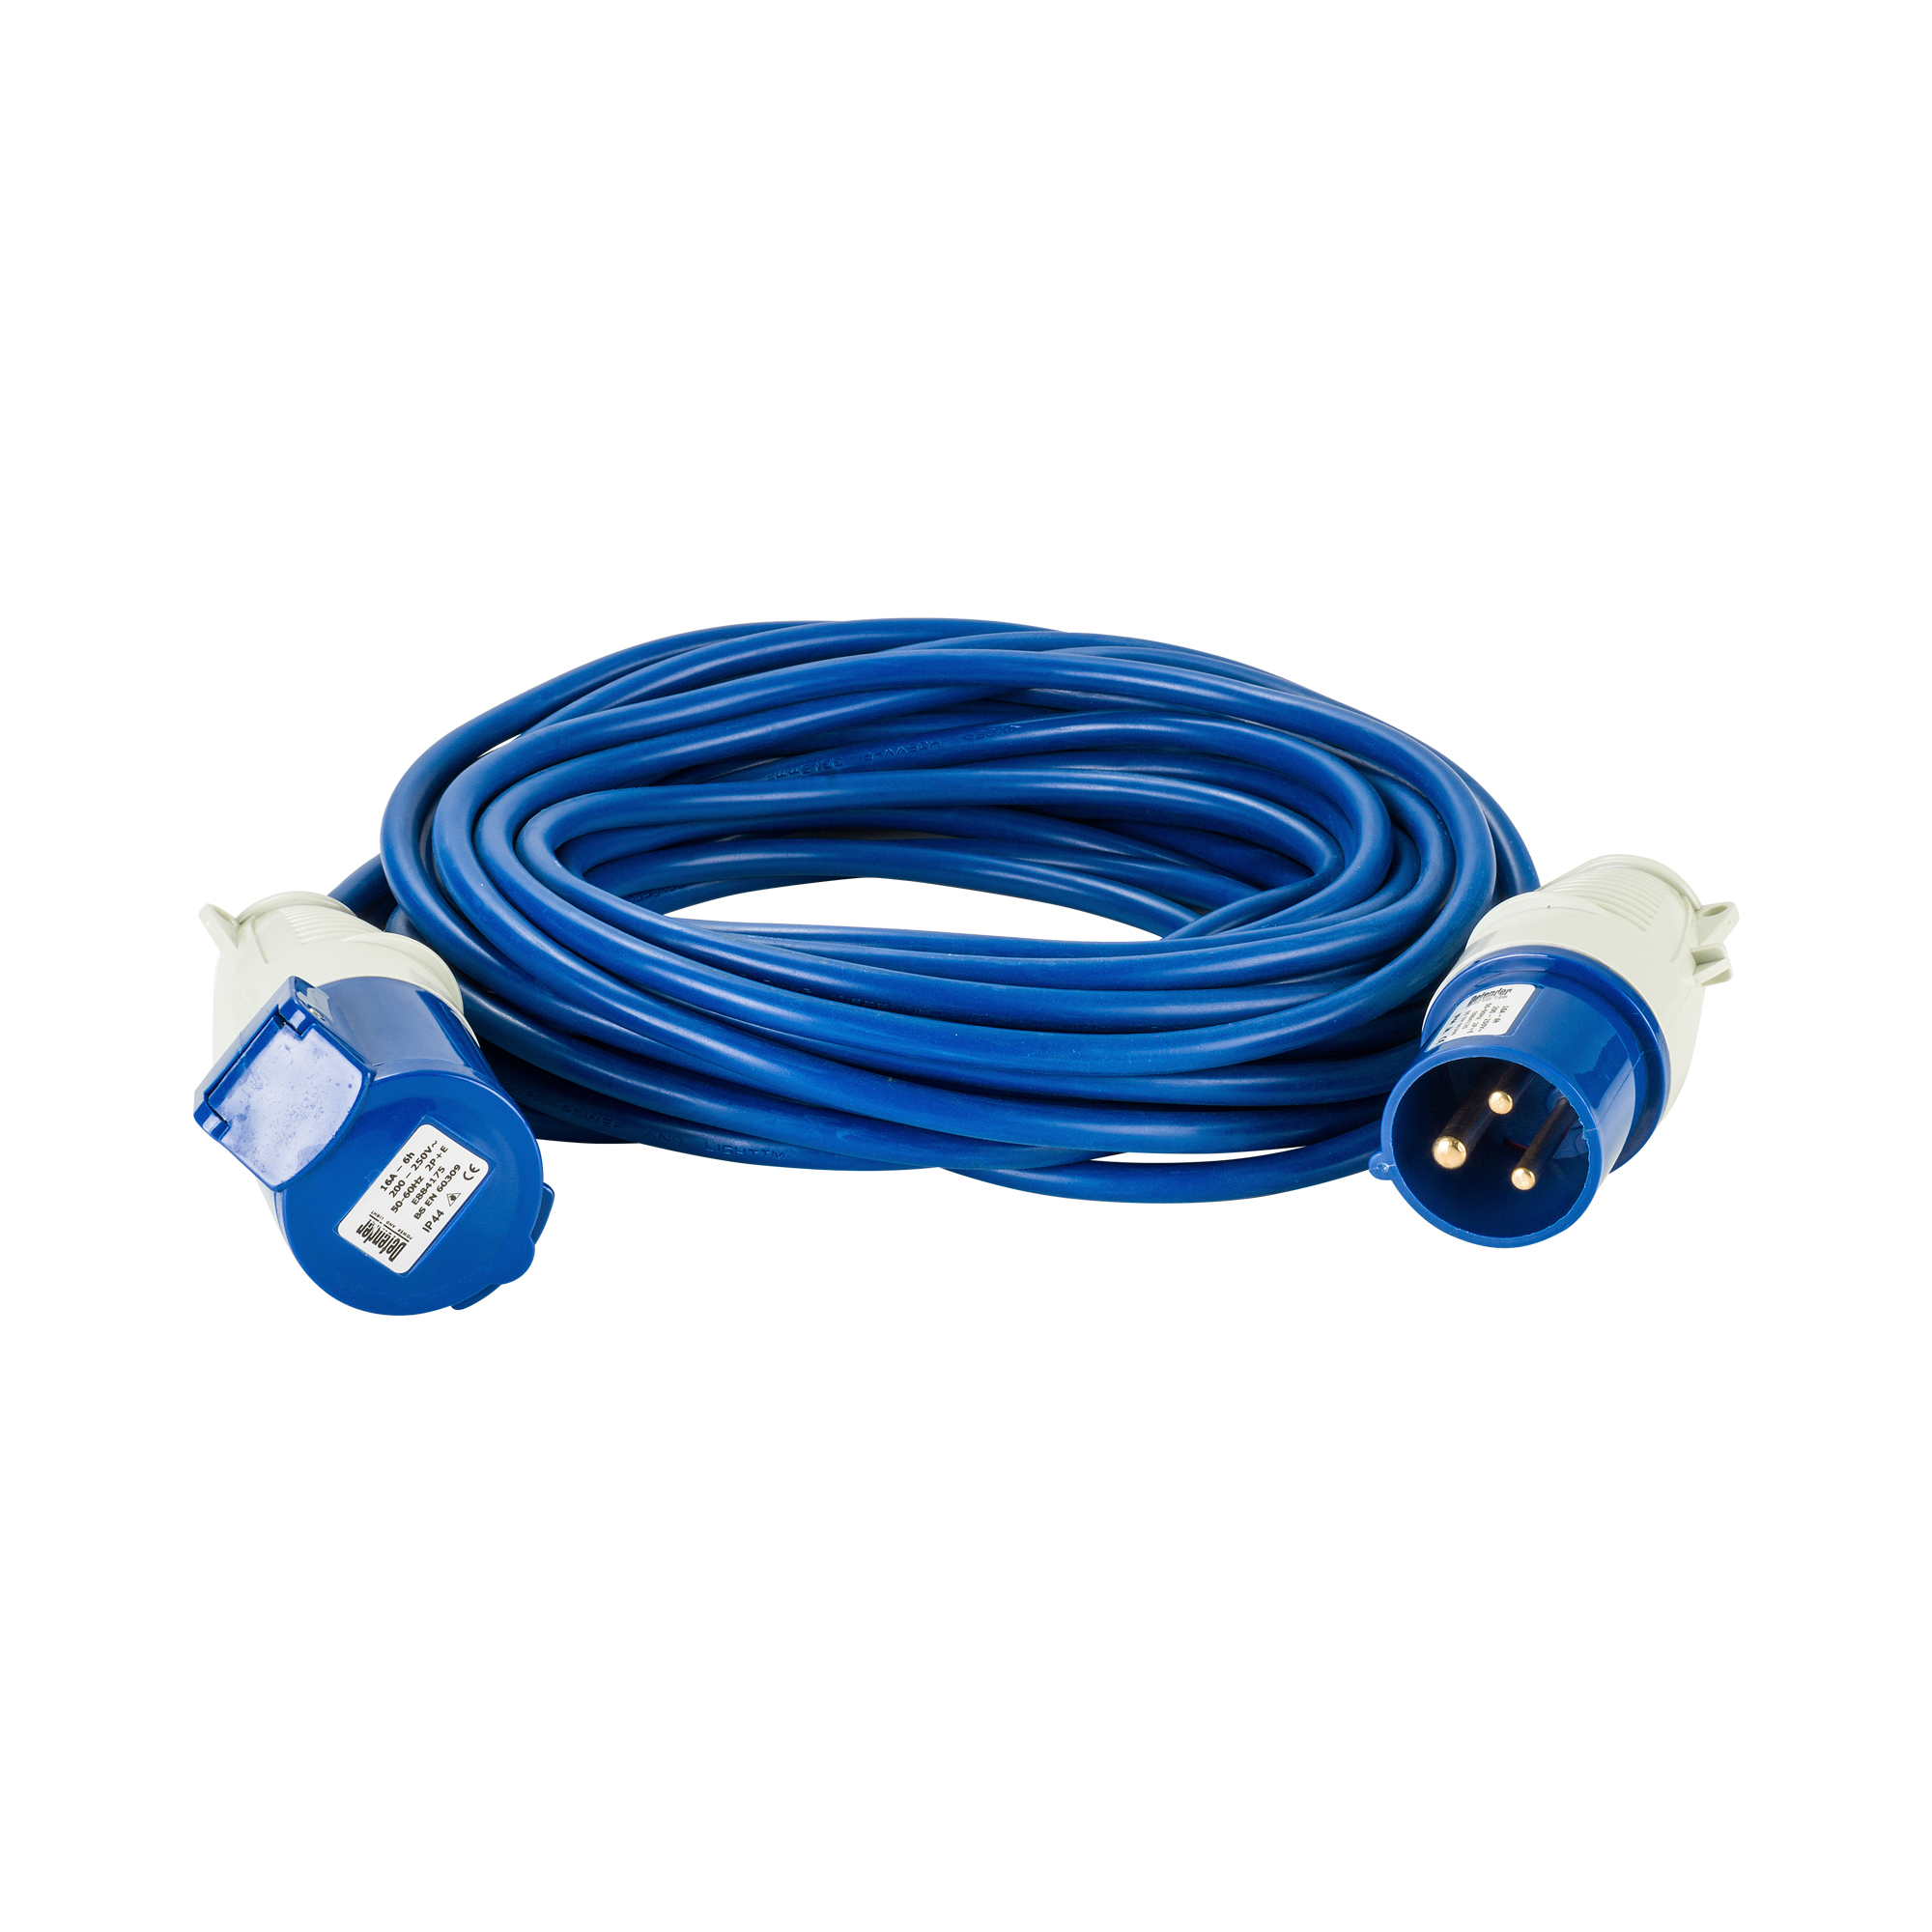 Blue Defender 14M 1.5mm 16A arctic grade 230V extension lead cable with Defender plug and coupler, on a white background